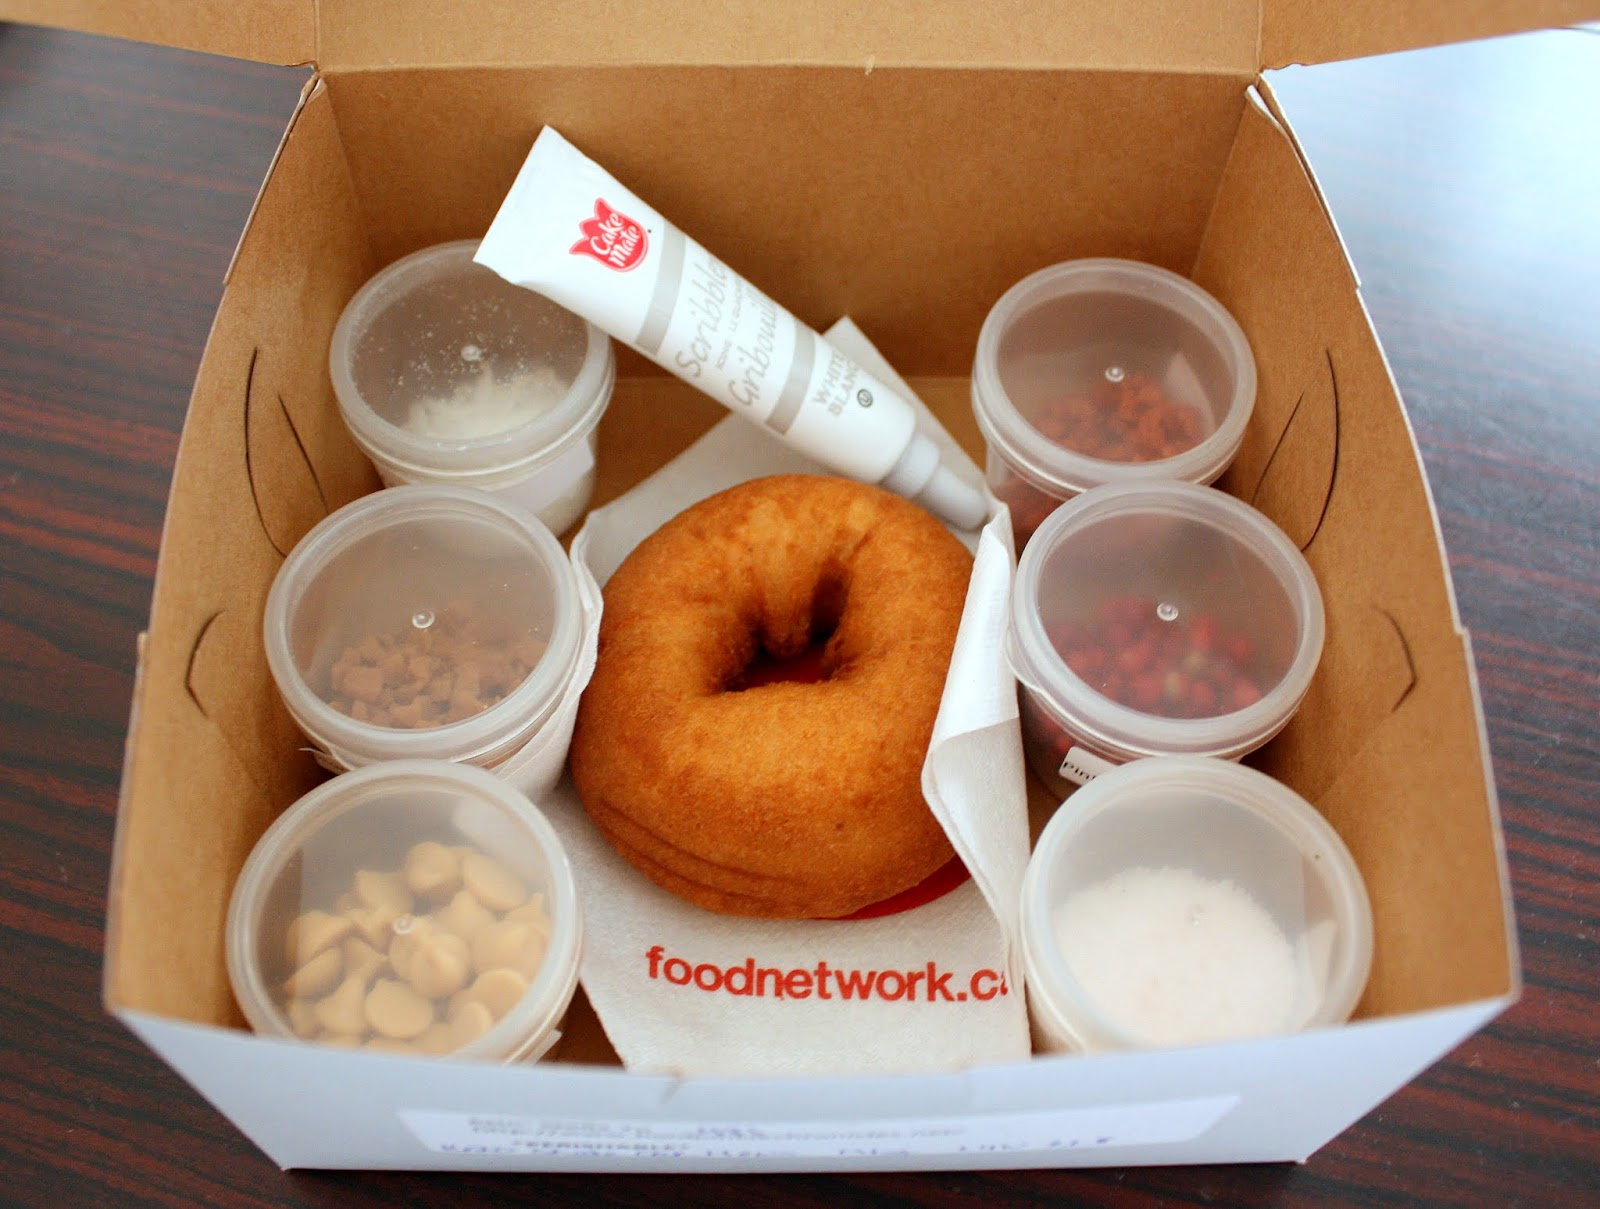 Food network canadas donut showdown food junkie chronicles im glad the folks at the food network know that i have no clue when it comes to making donuts forumfinder Choice Image